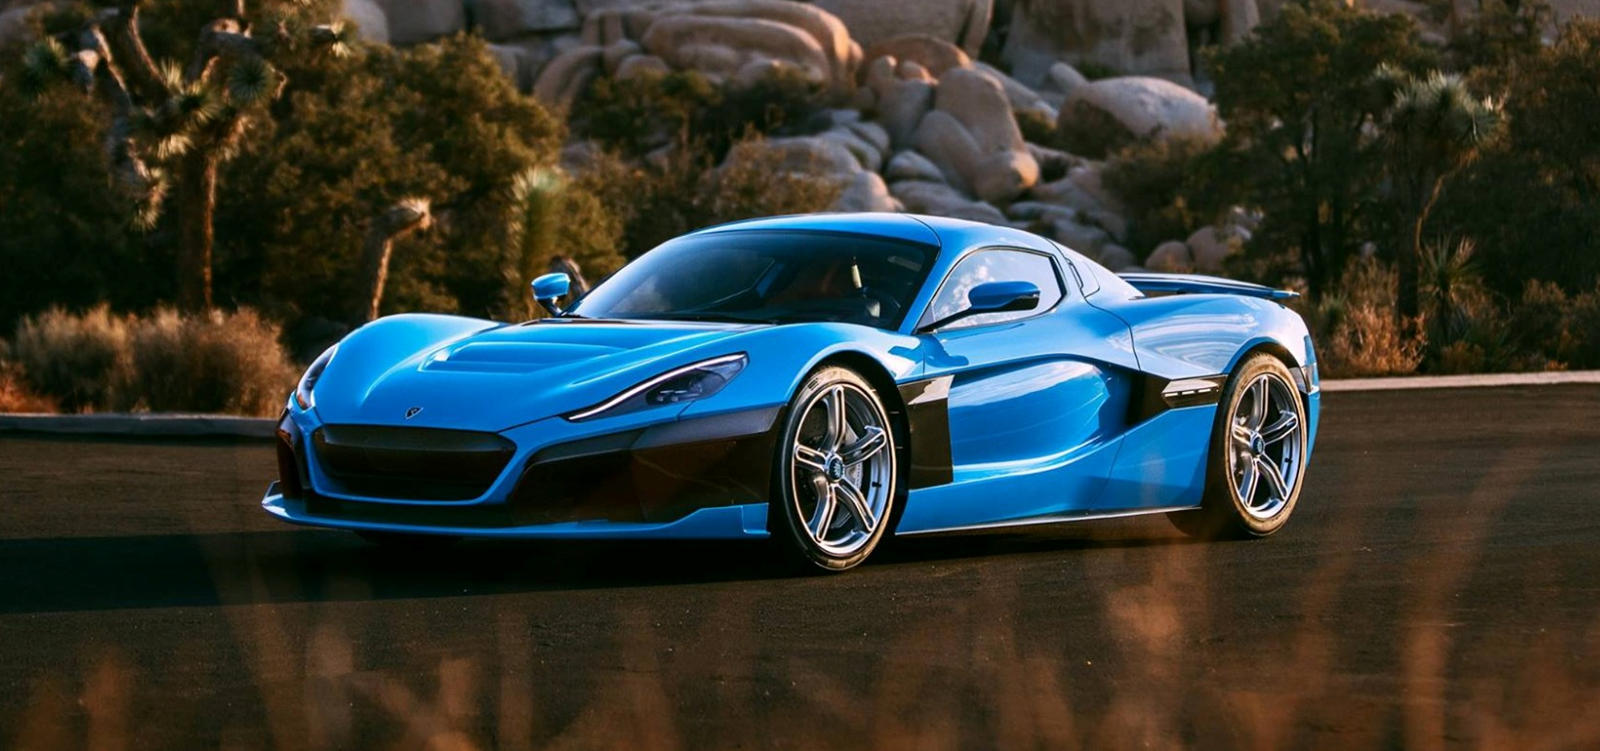 Rimac-Concept-Two-on-display